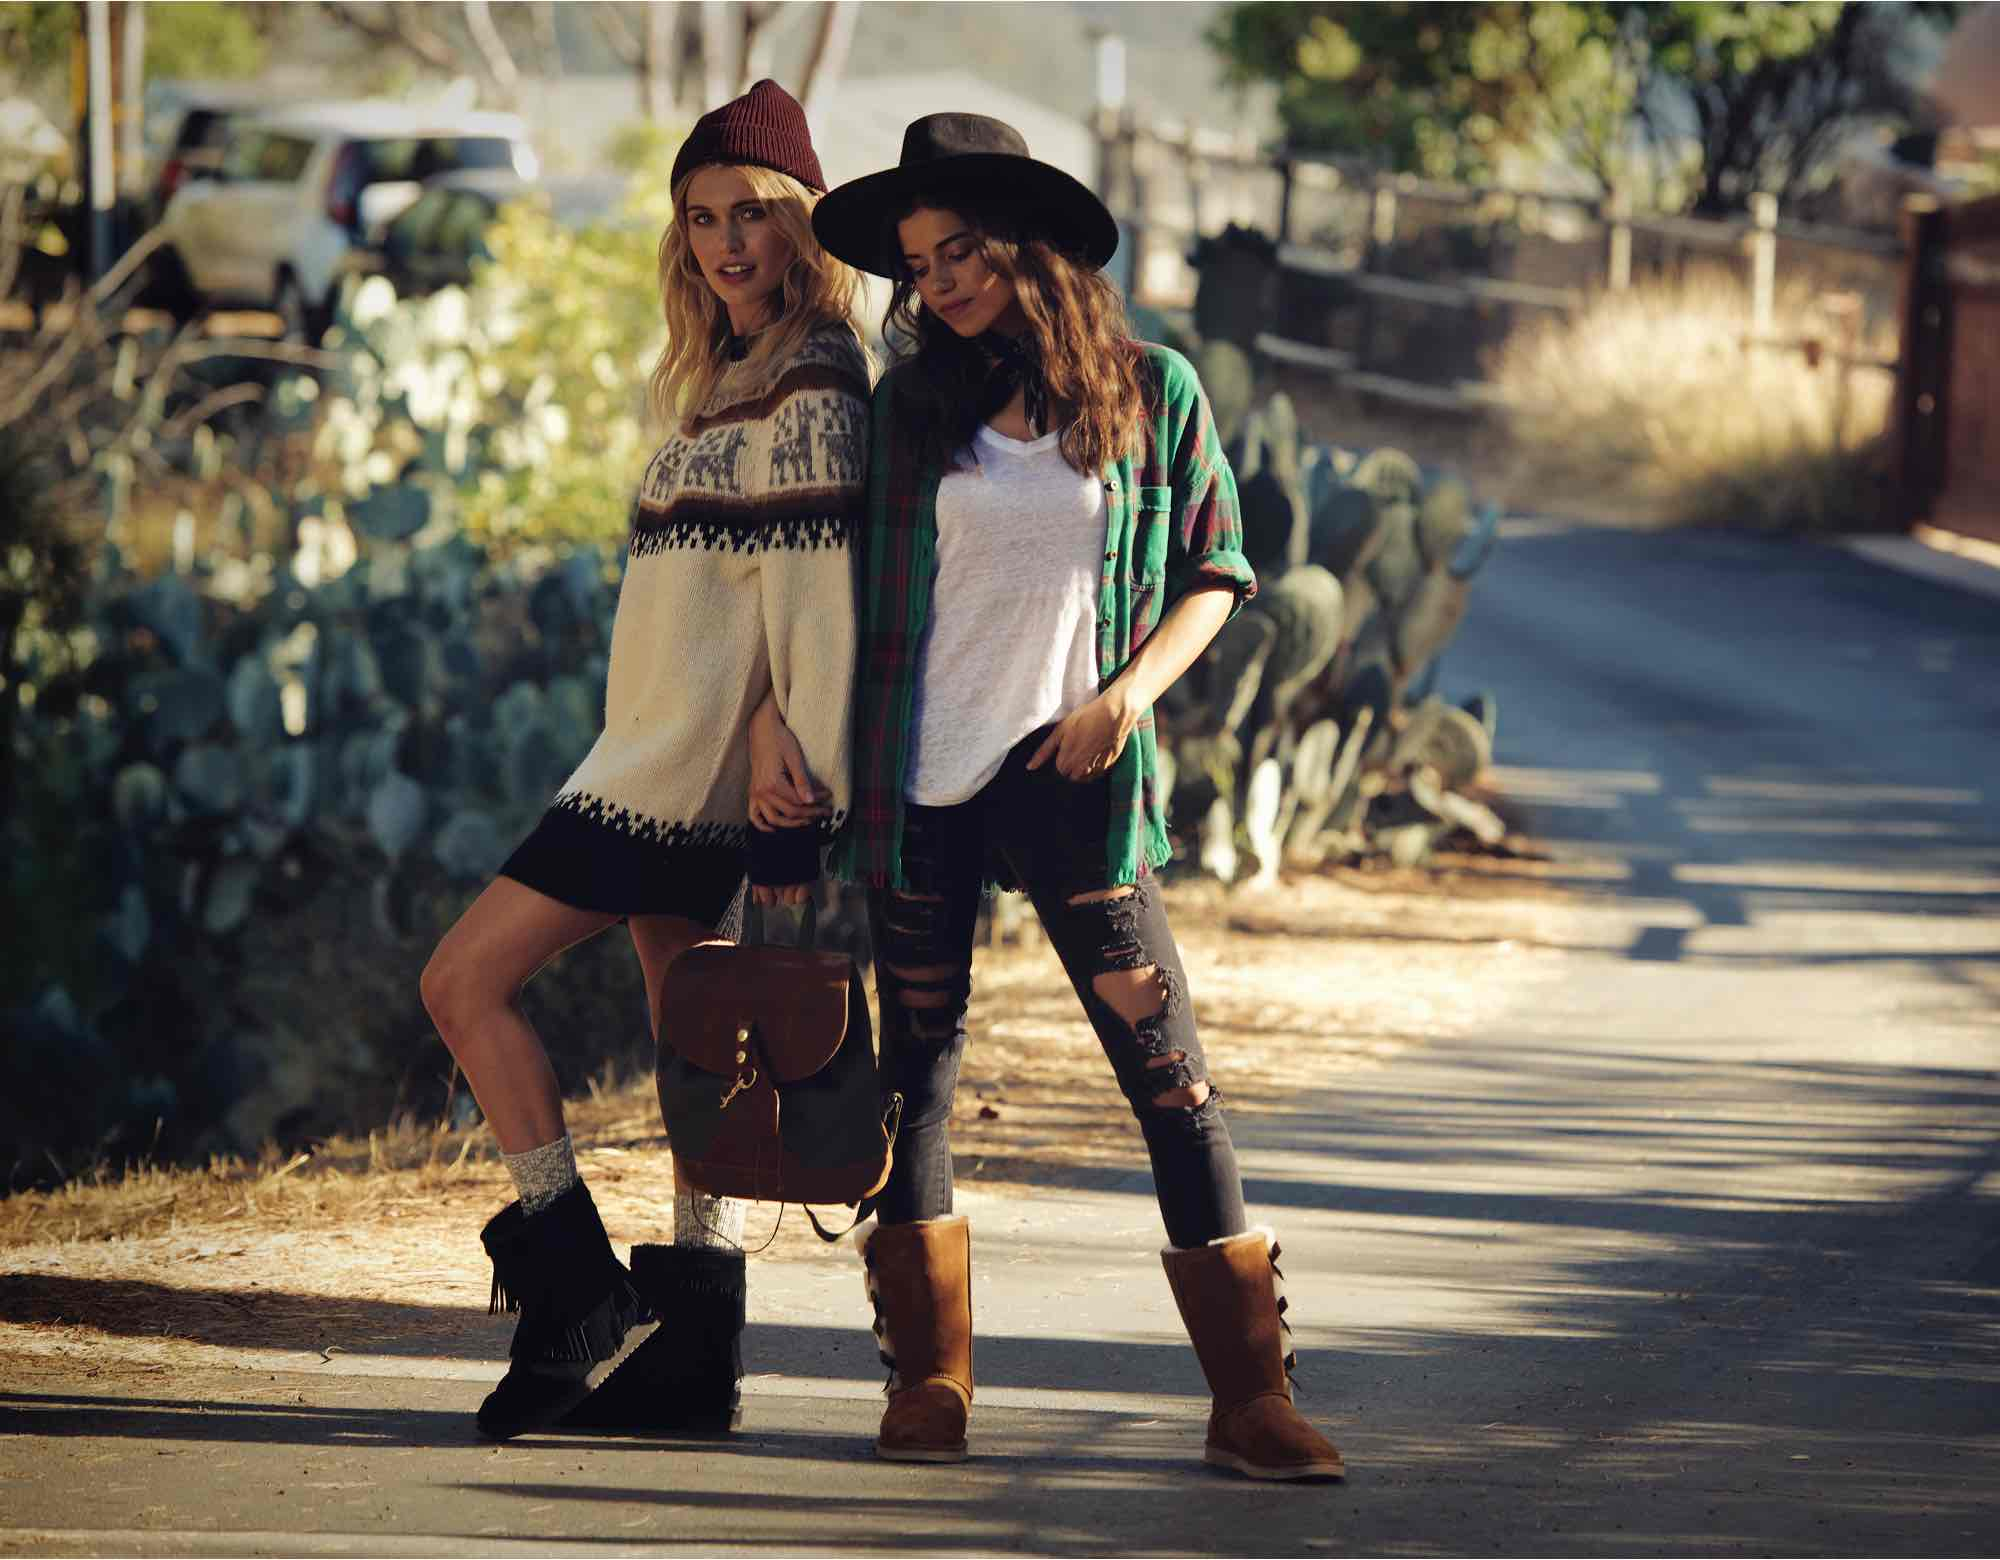 Two women in casual fall and winter attire in warm Koolaburra boots.